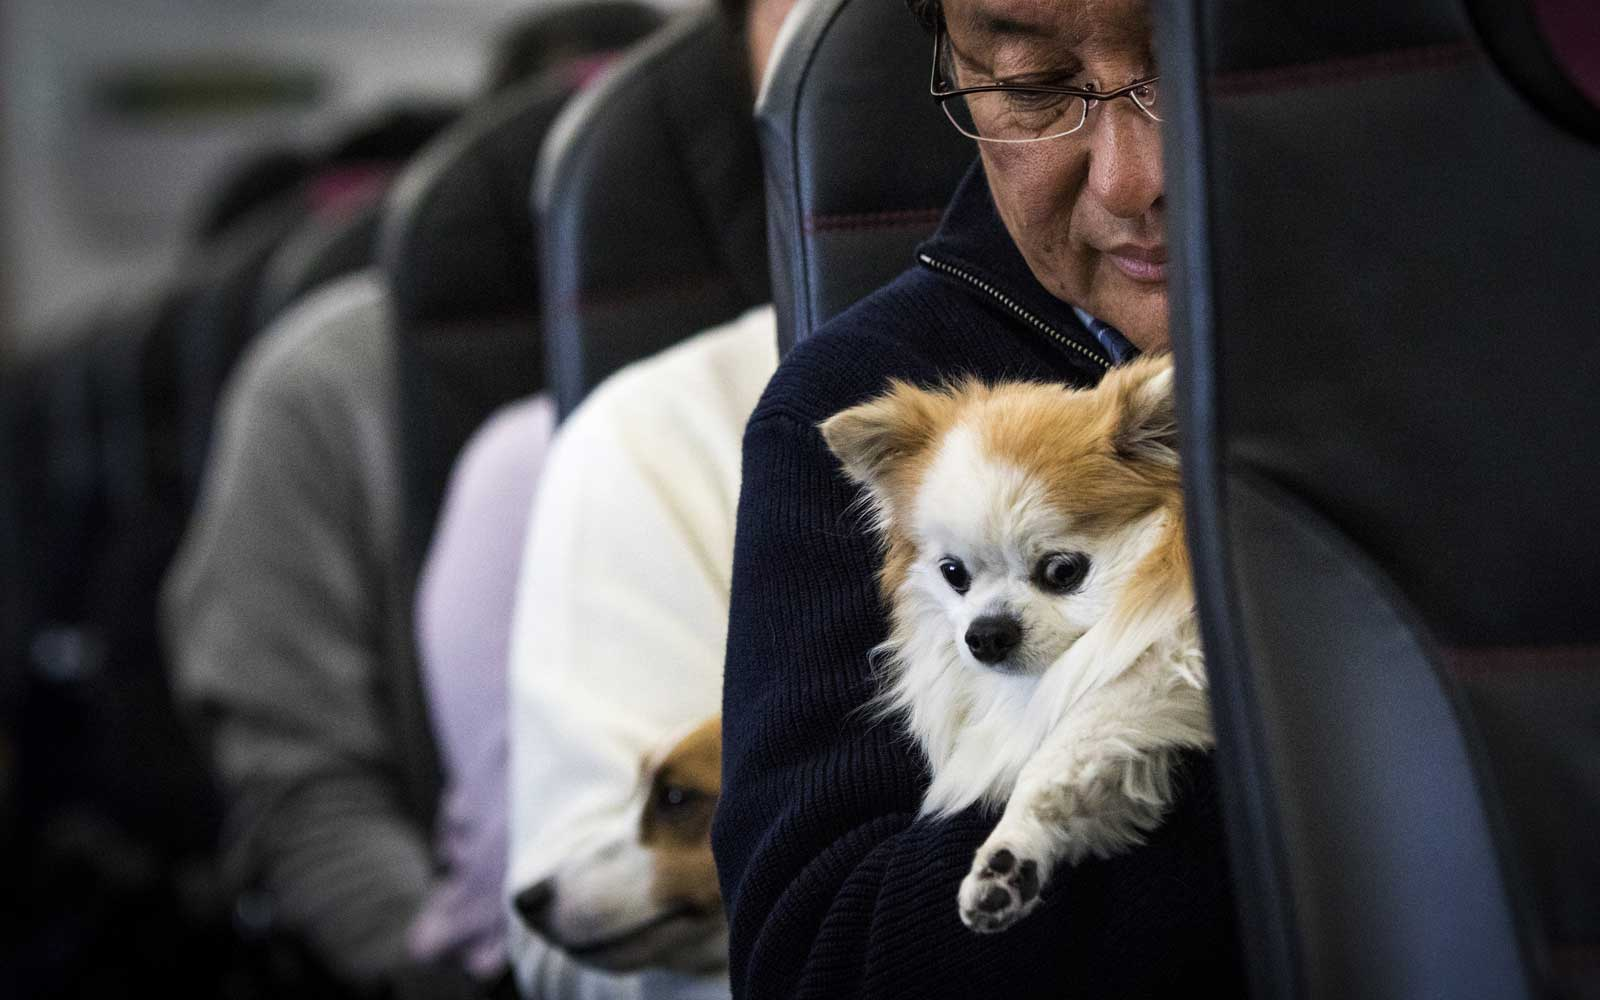 A Complete Guide to Bringing Animals on Flights